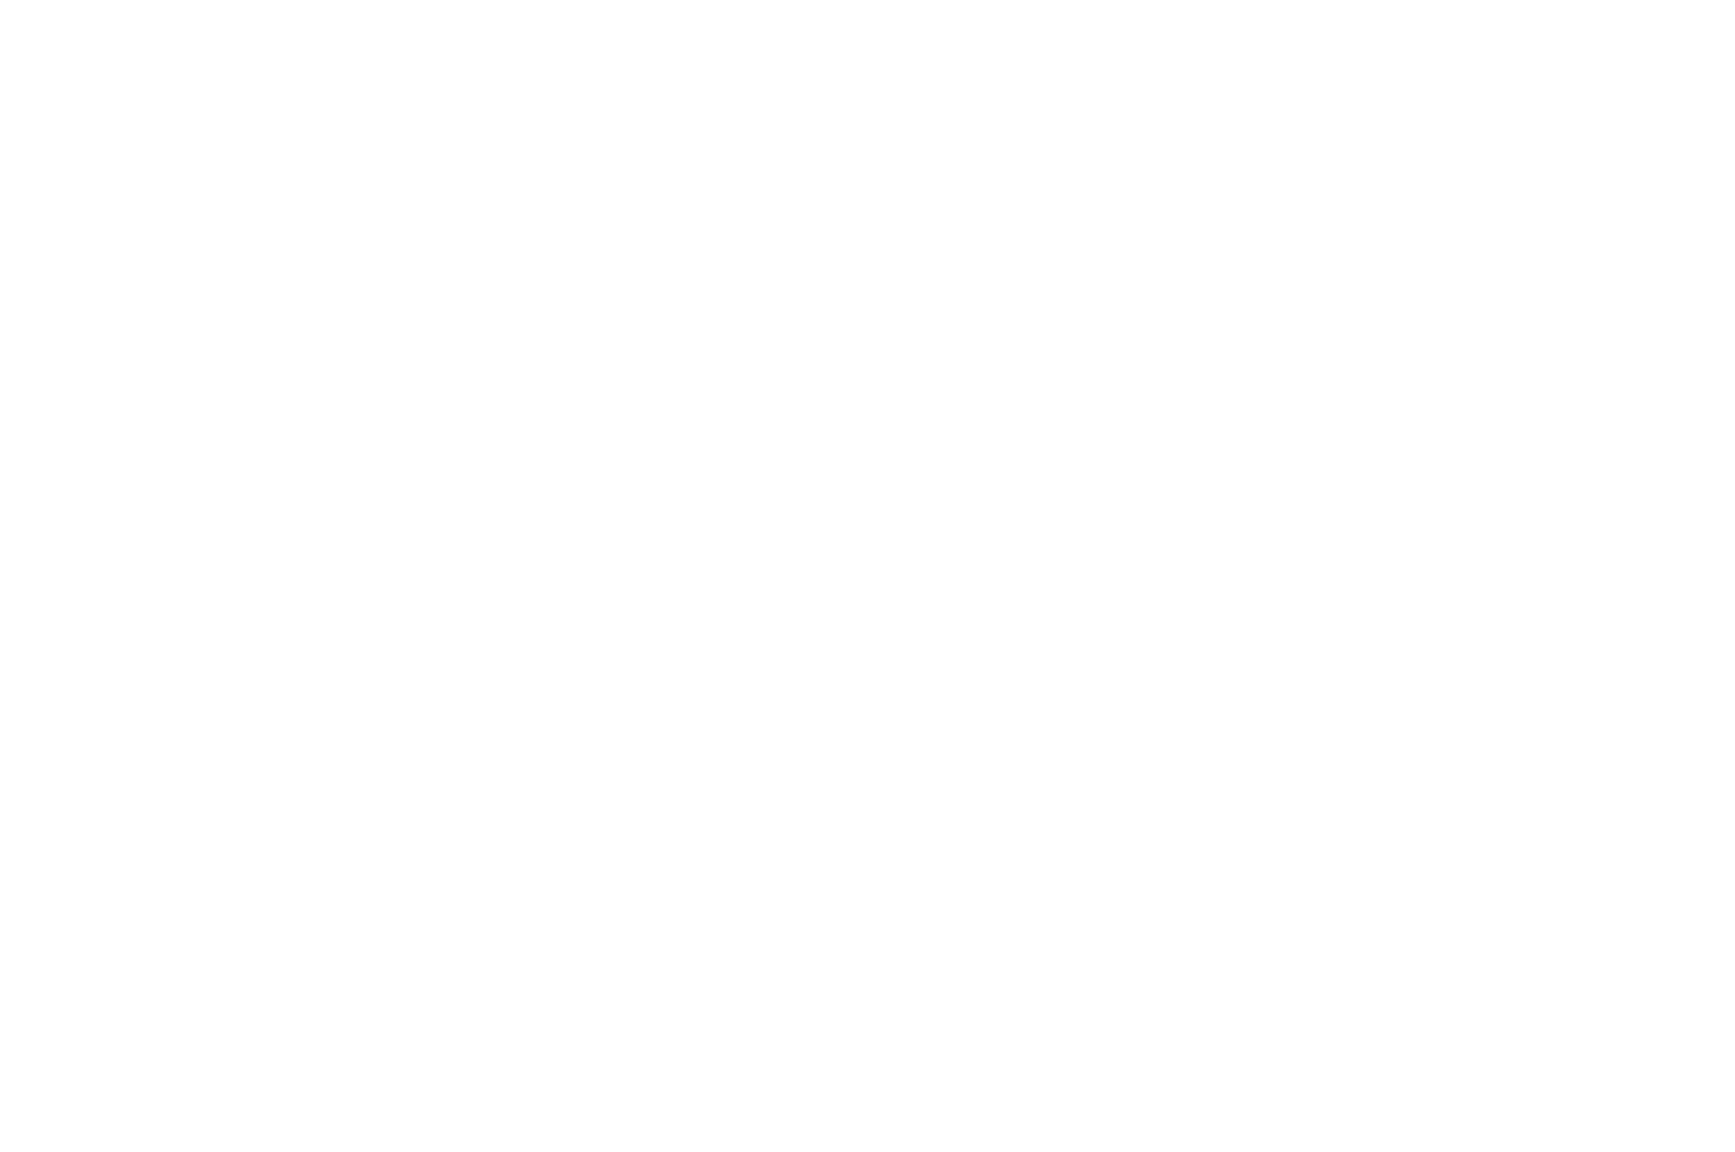 OFFICIAL SELECTION - Austin Micro Film Festival - 2020